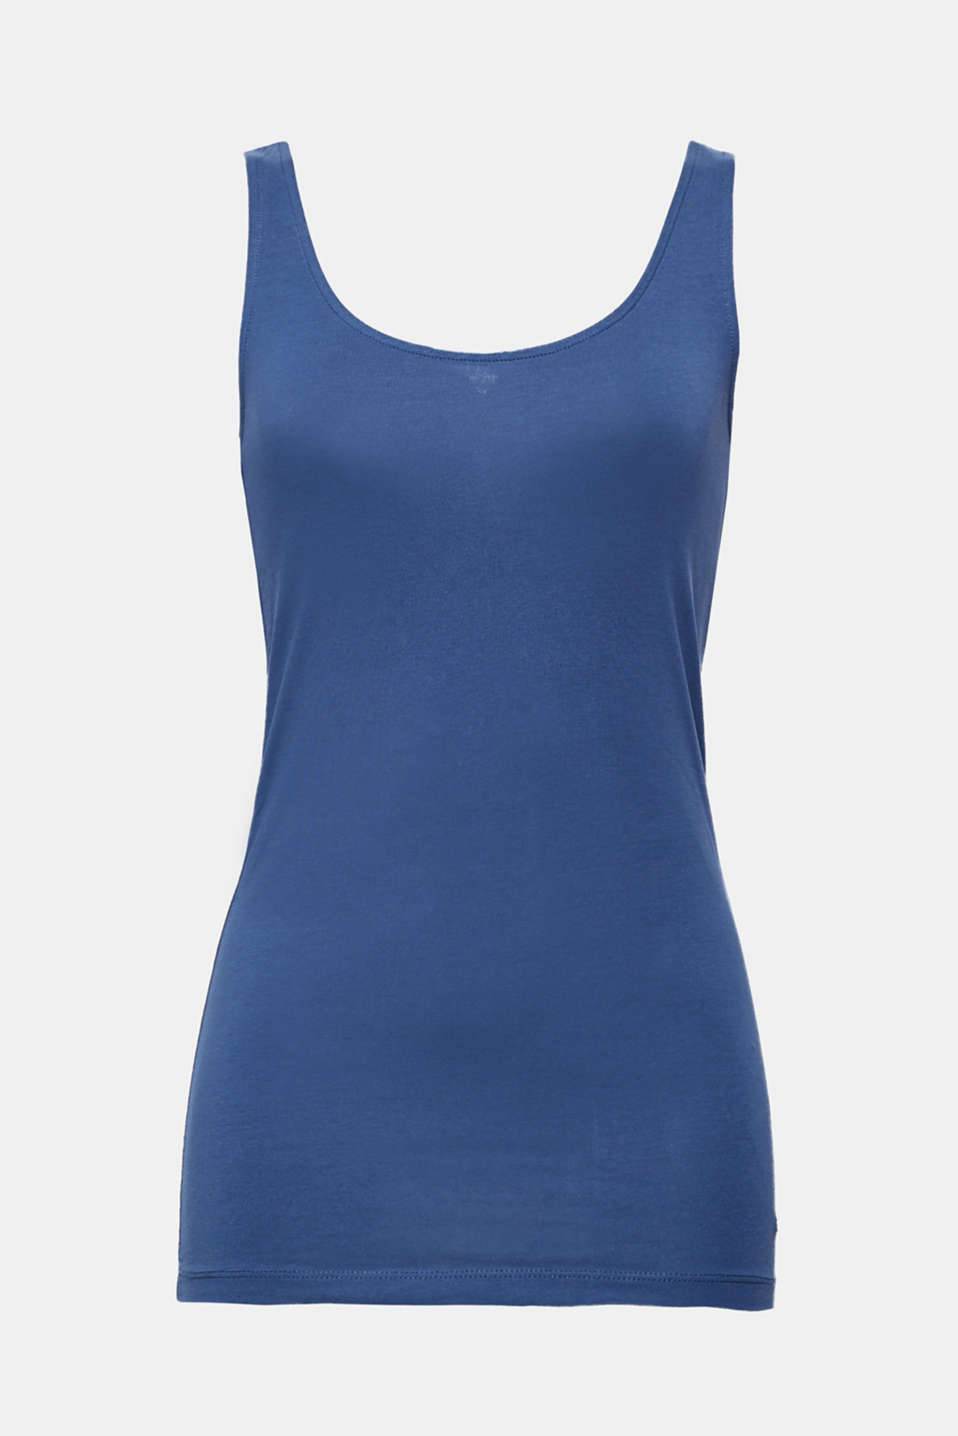 Your summer essential: sporty vest made of gently processed, high-quality organic cotton with stretch for comfort.